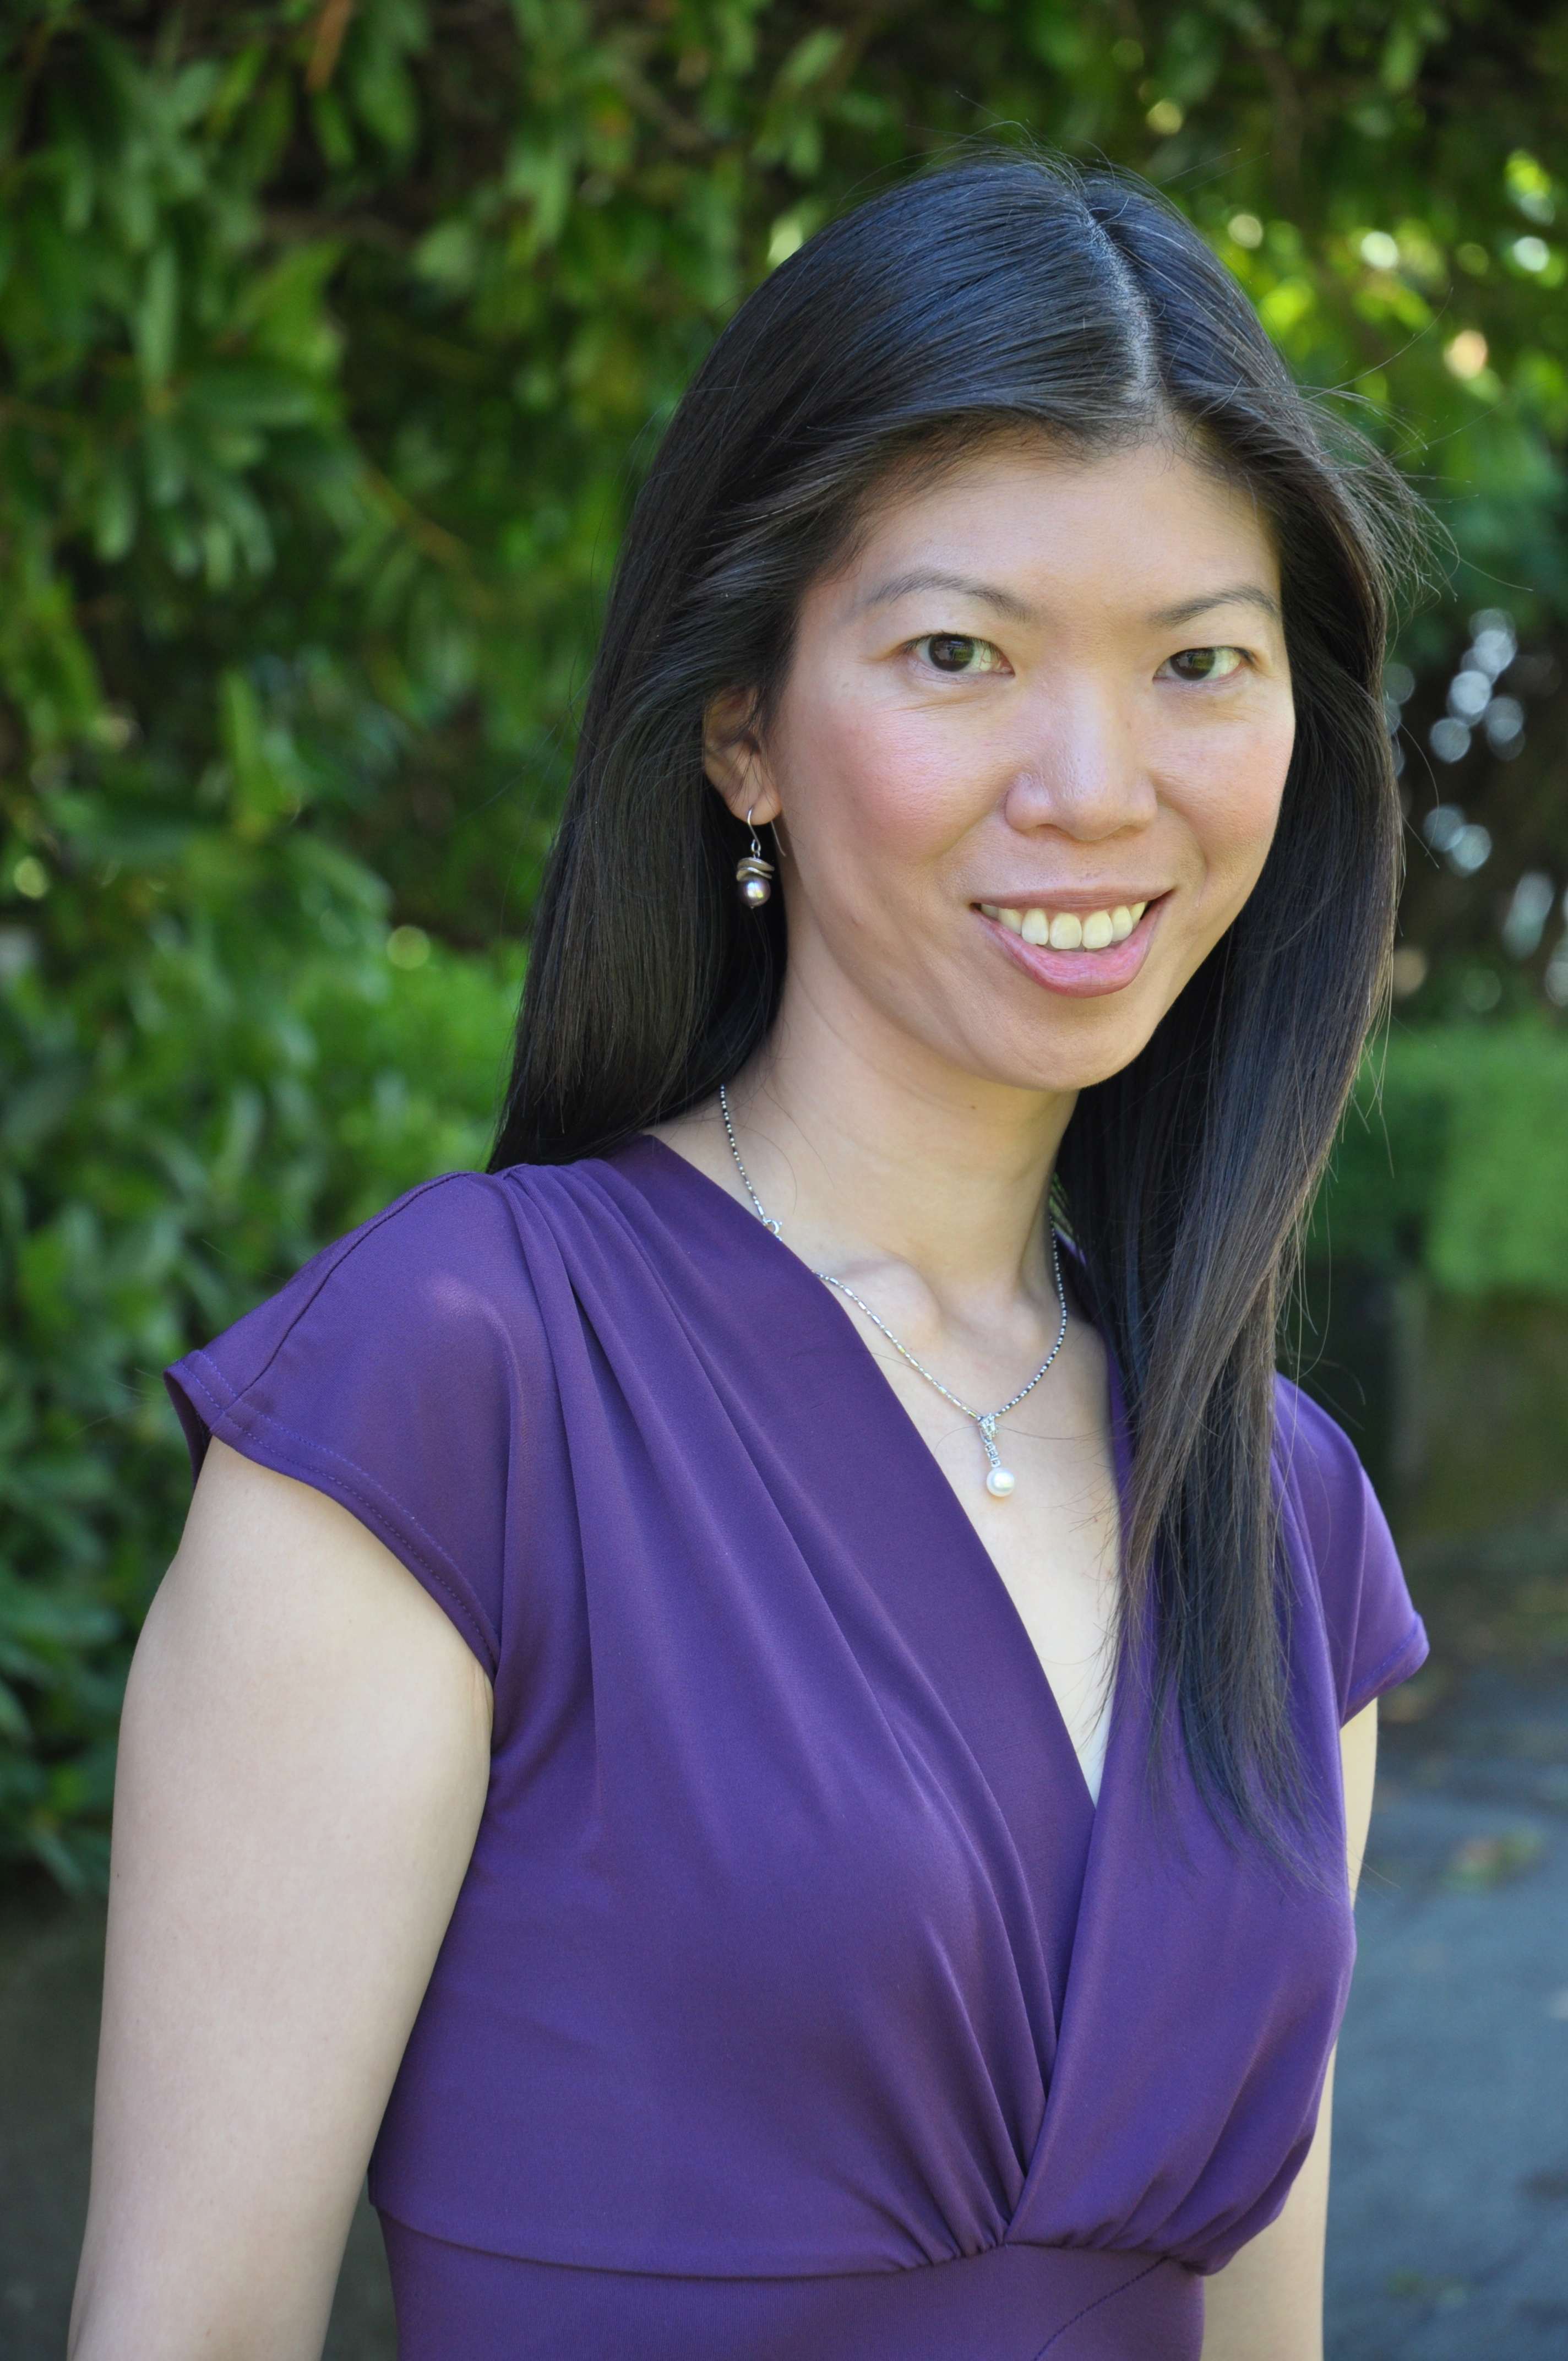 Anita Ho, associate professor in bioethics and health services research at University of British Columbia and The University of California, San Francisco